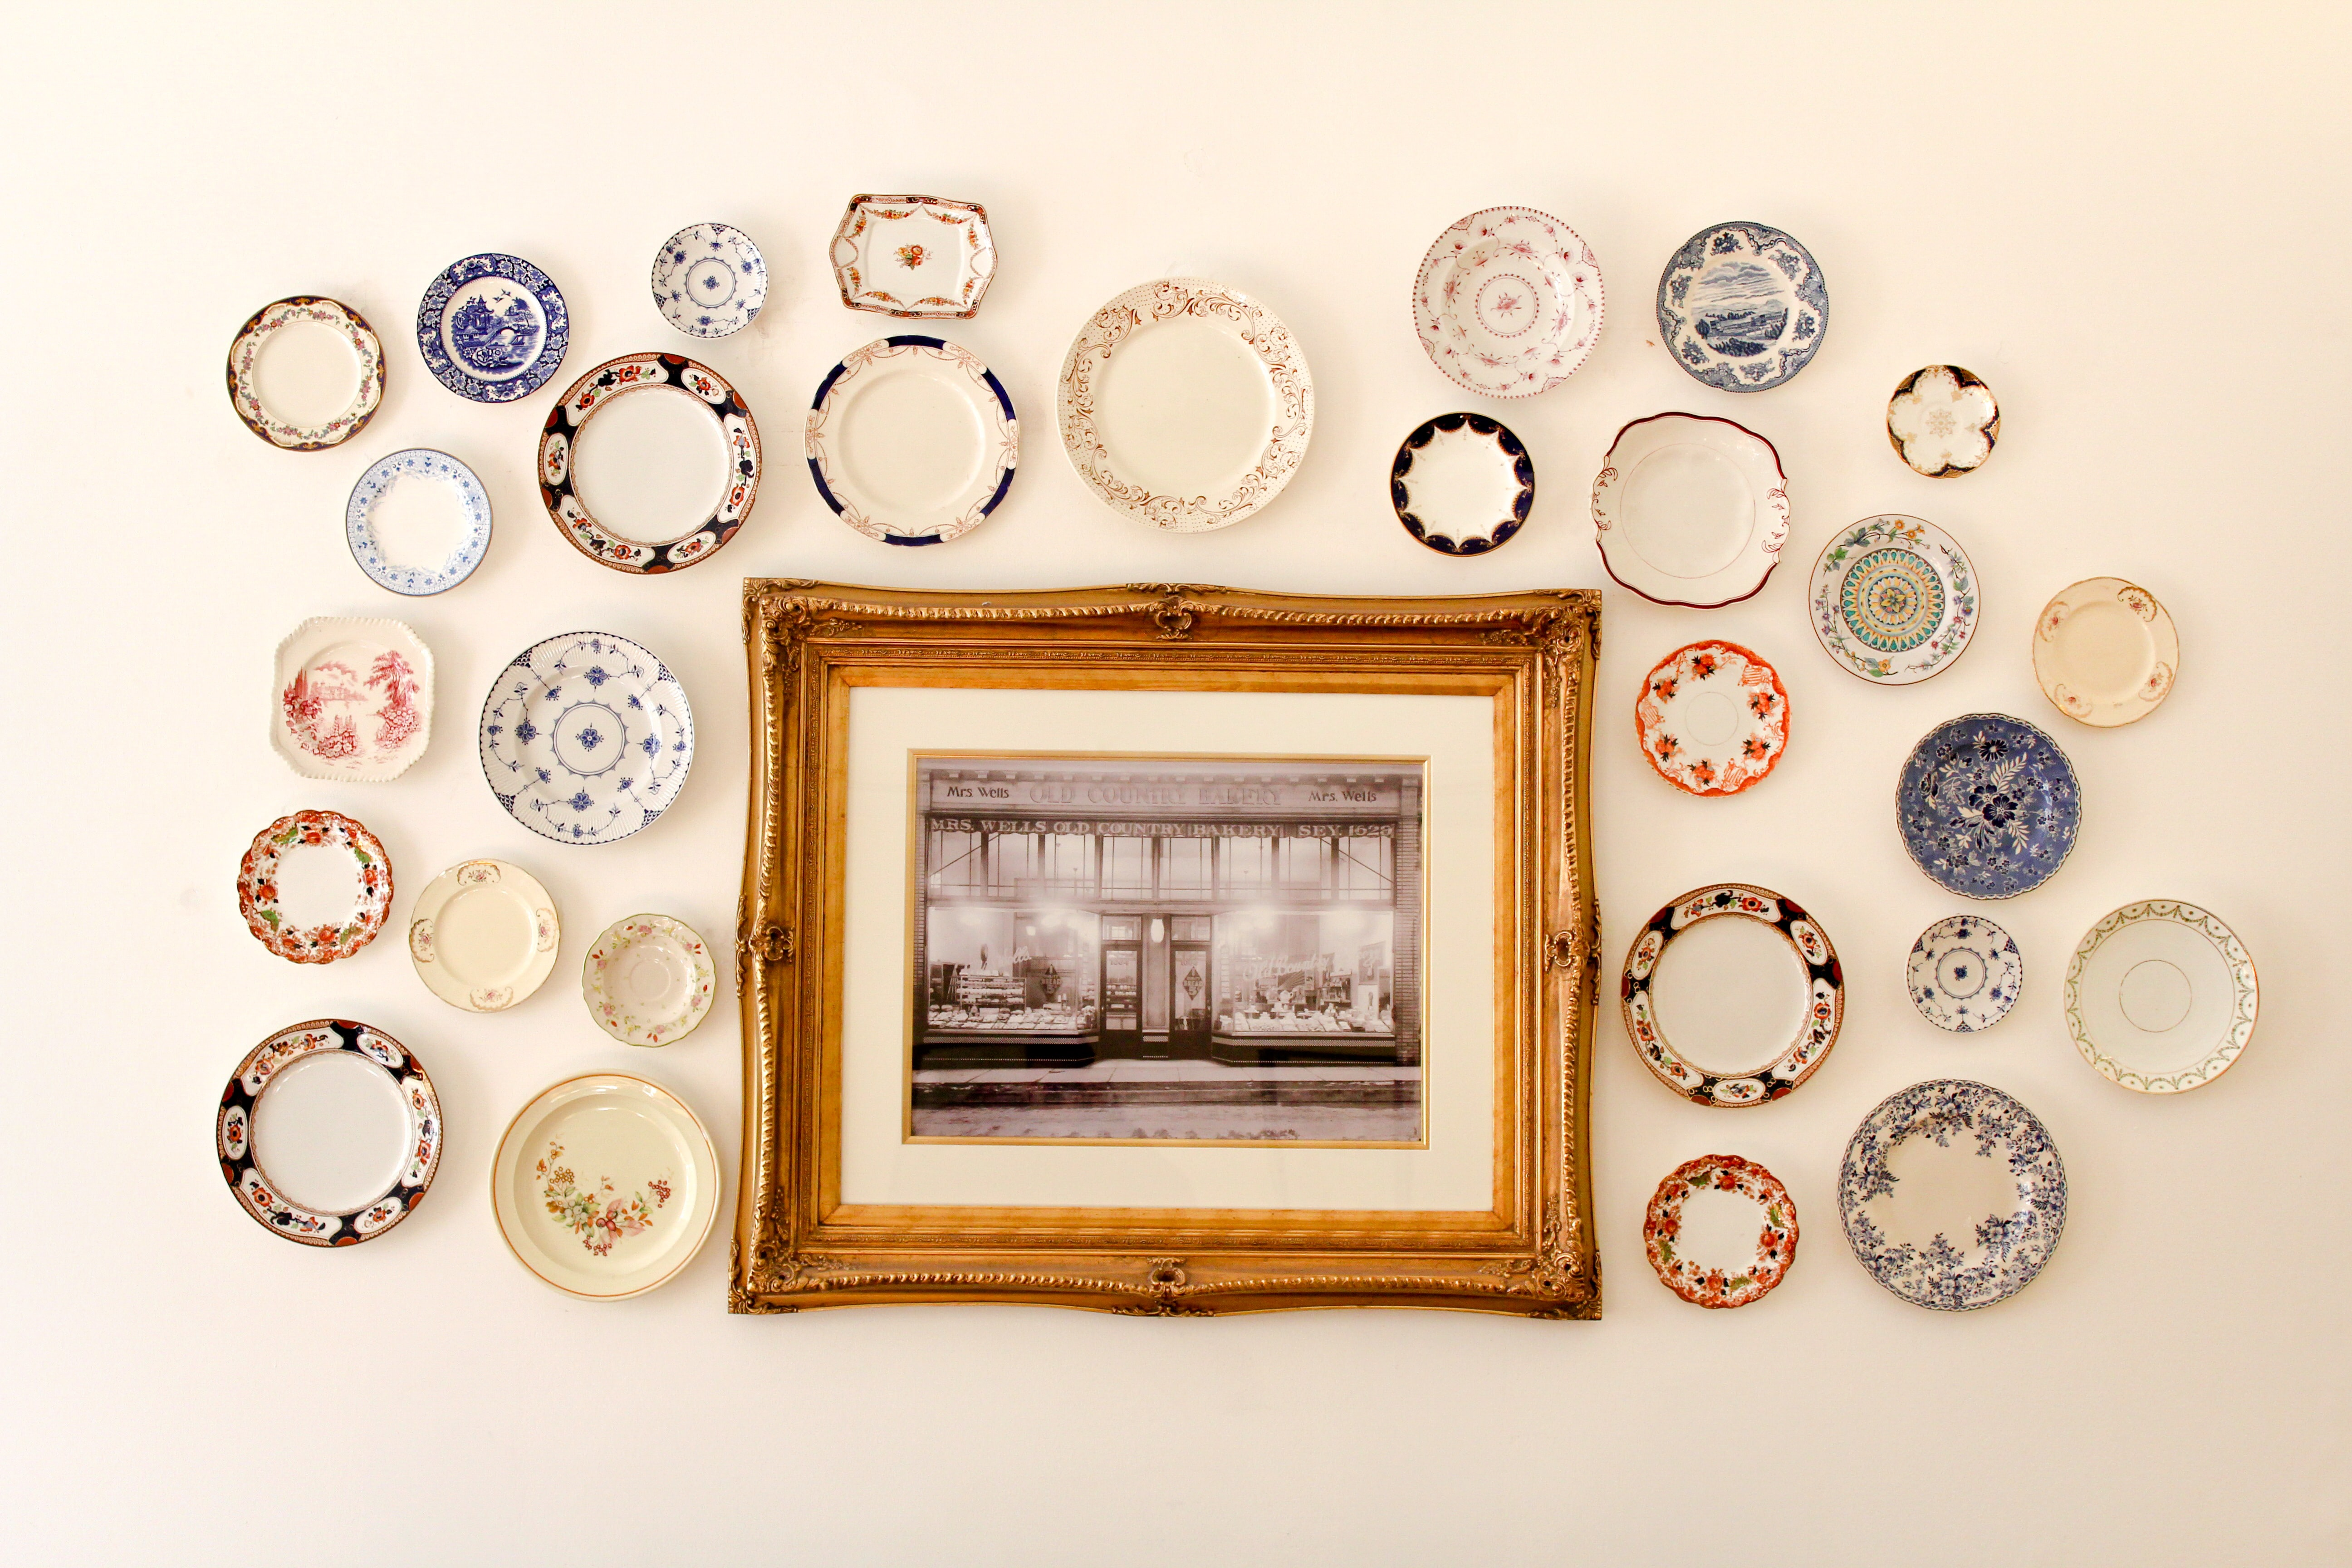 Photo in a wooden frame surrounded by colorful decorative plates all hanging on a white wall